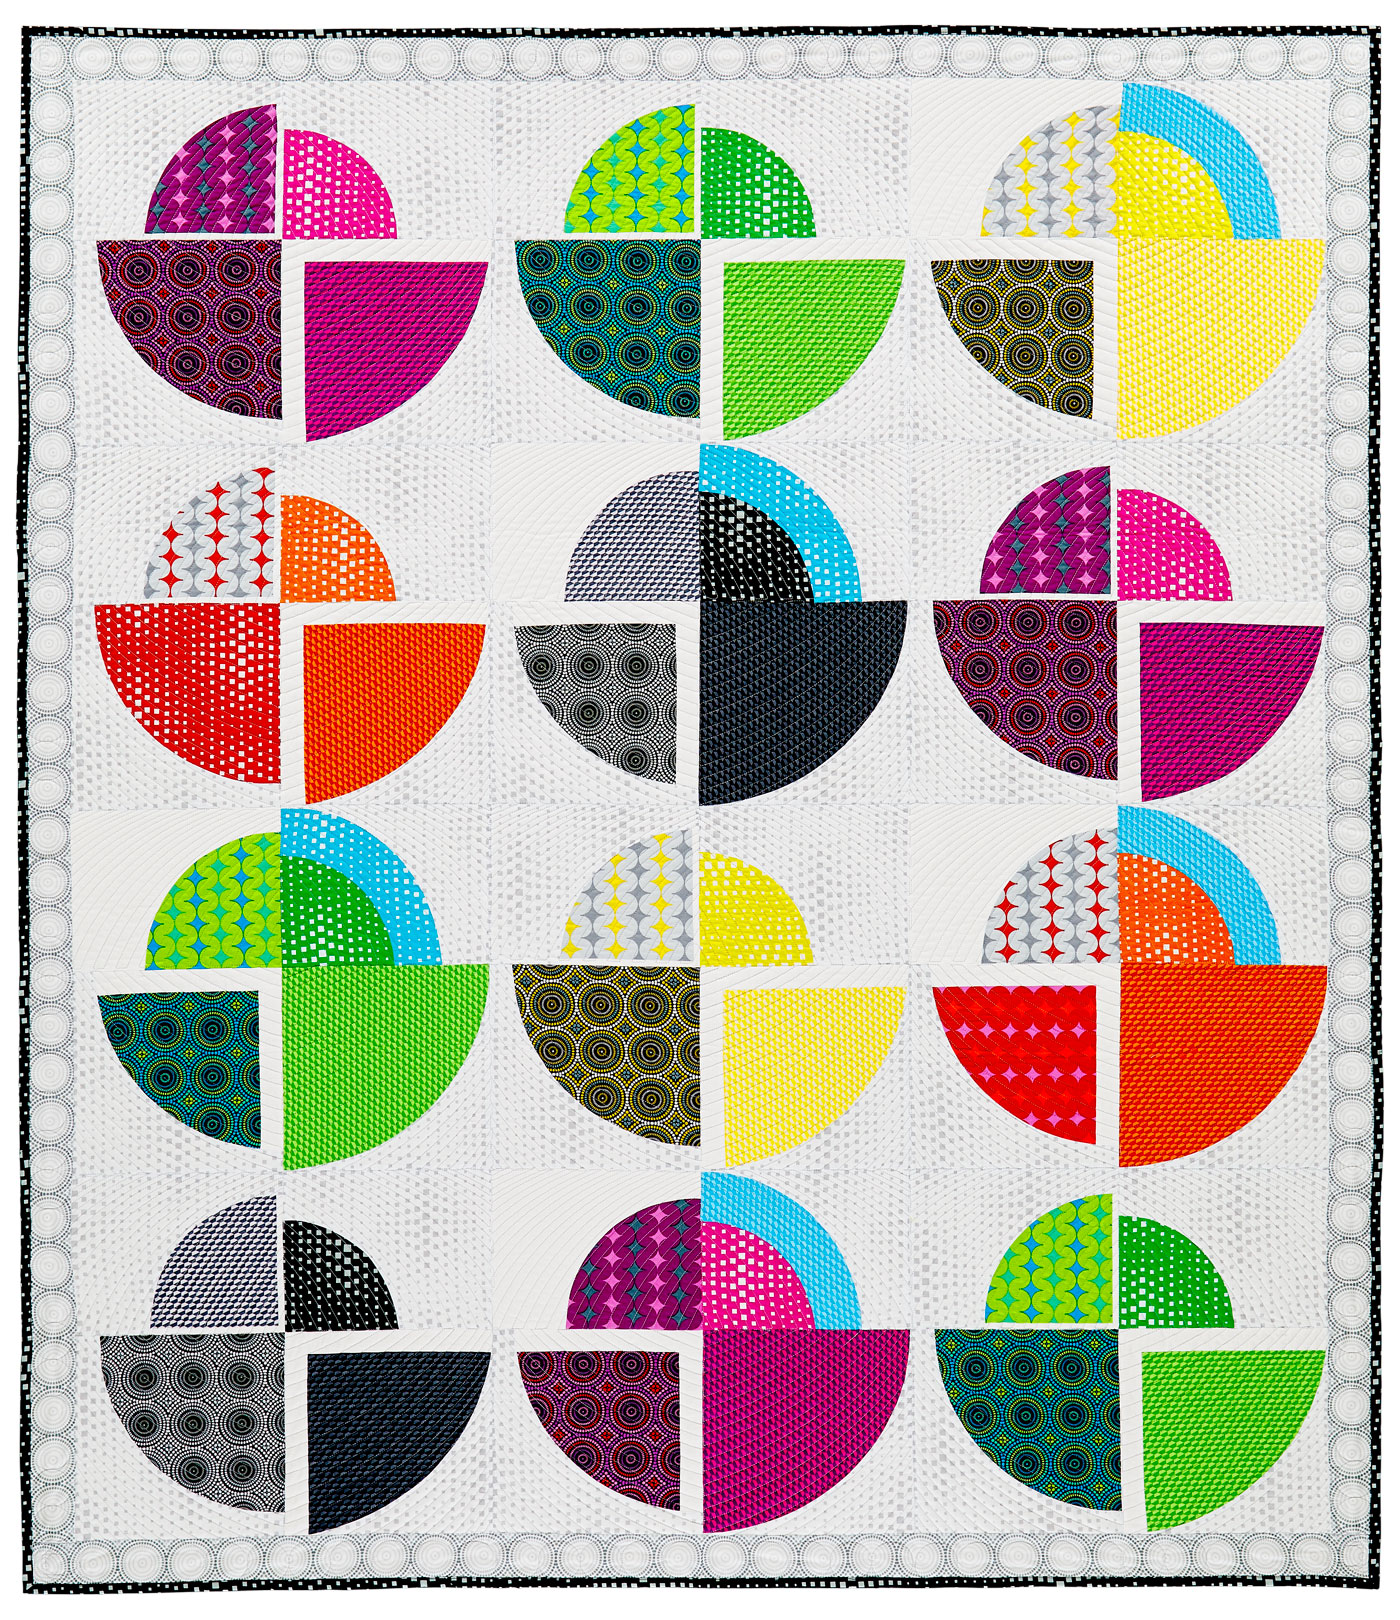 Make The Rounds Quilt by Heather Black